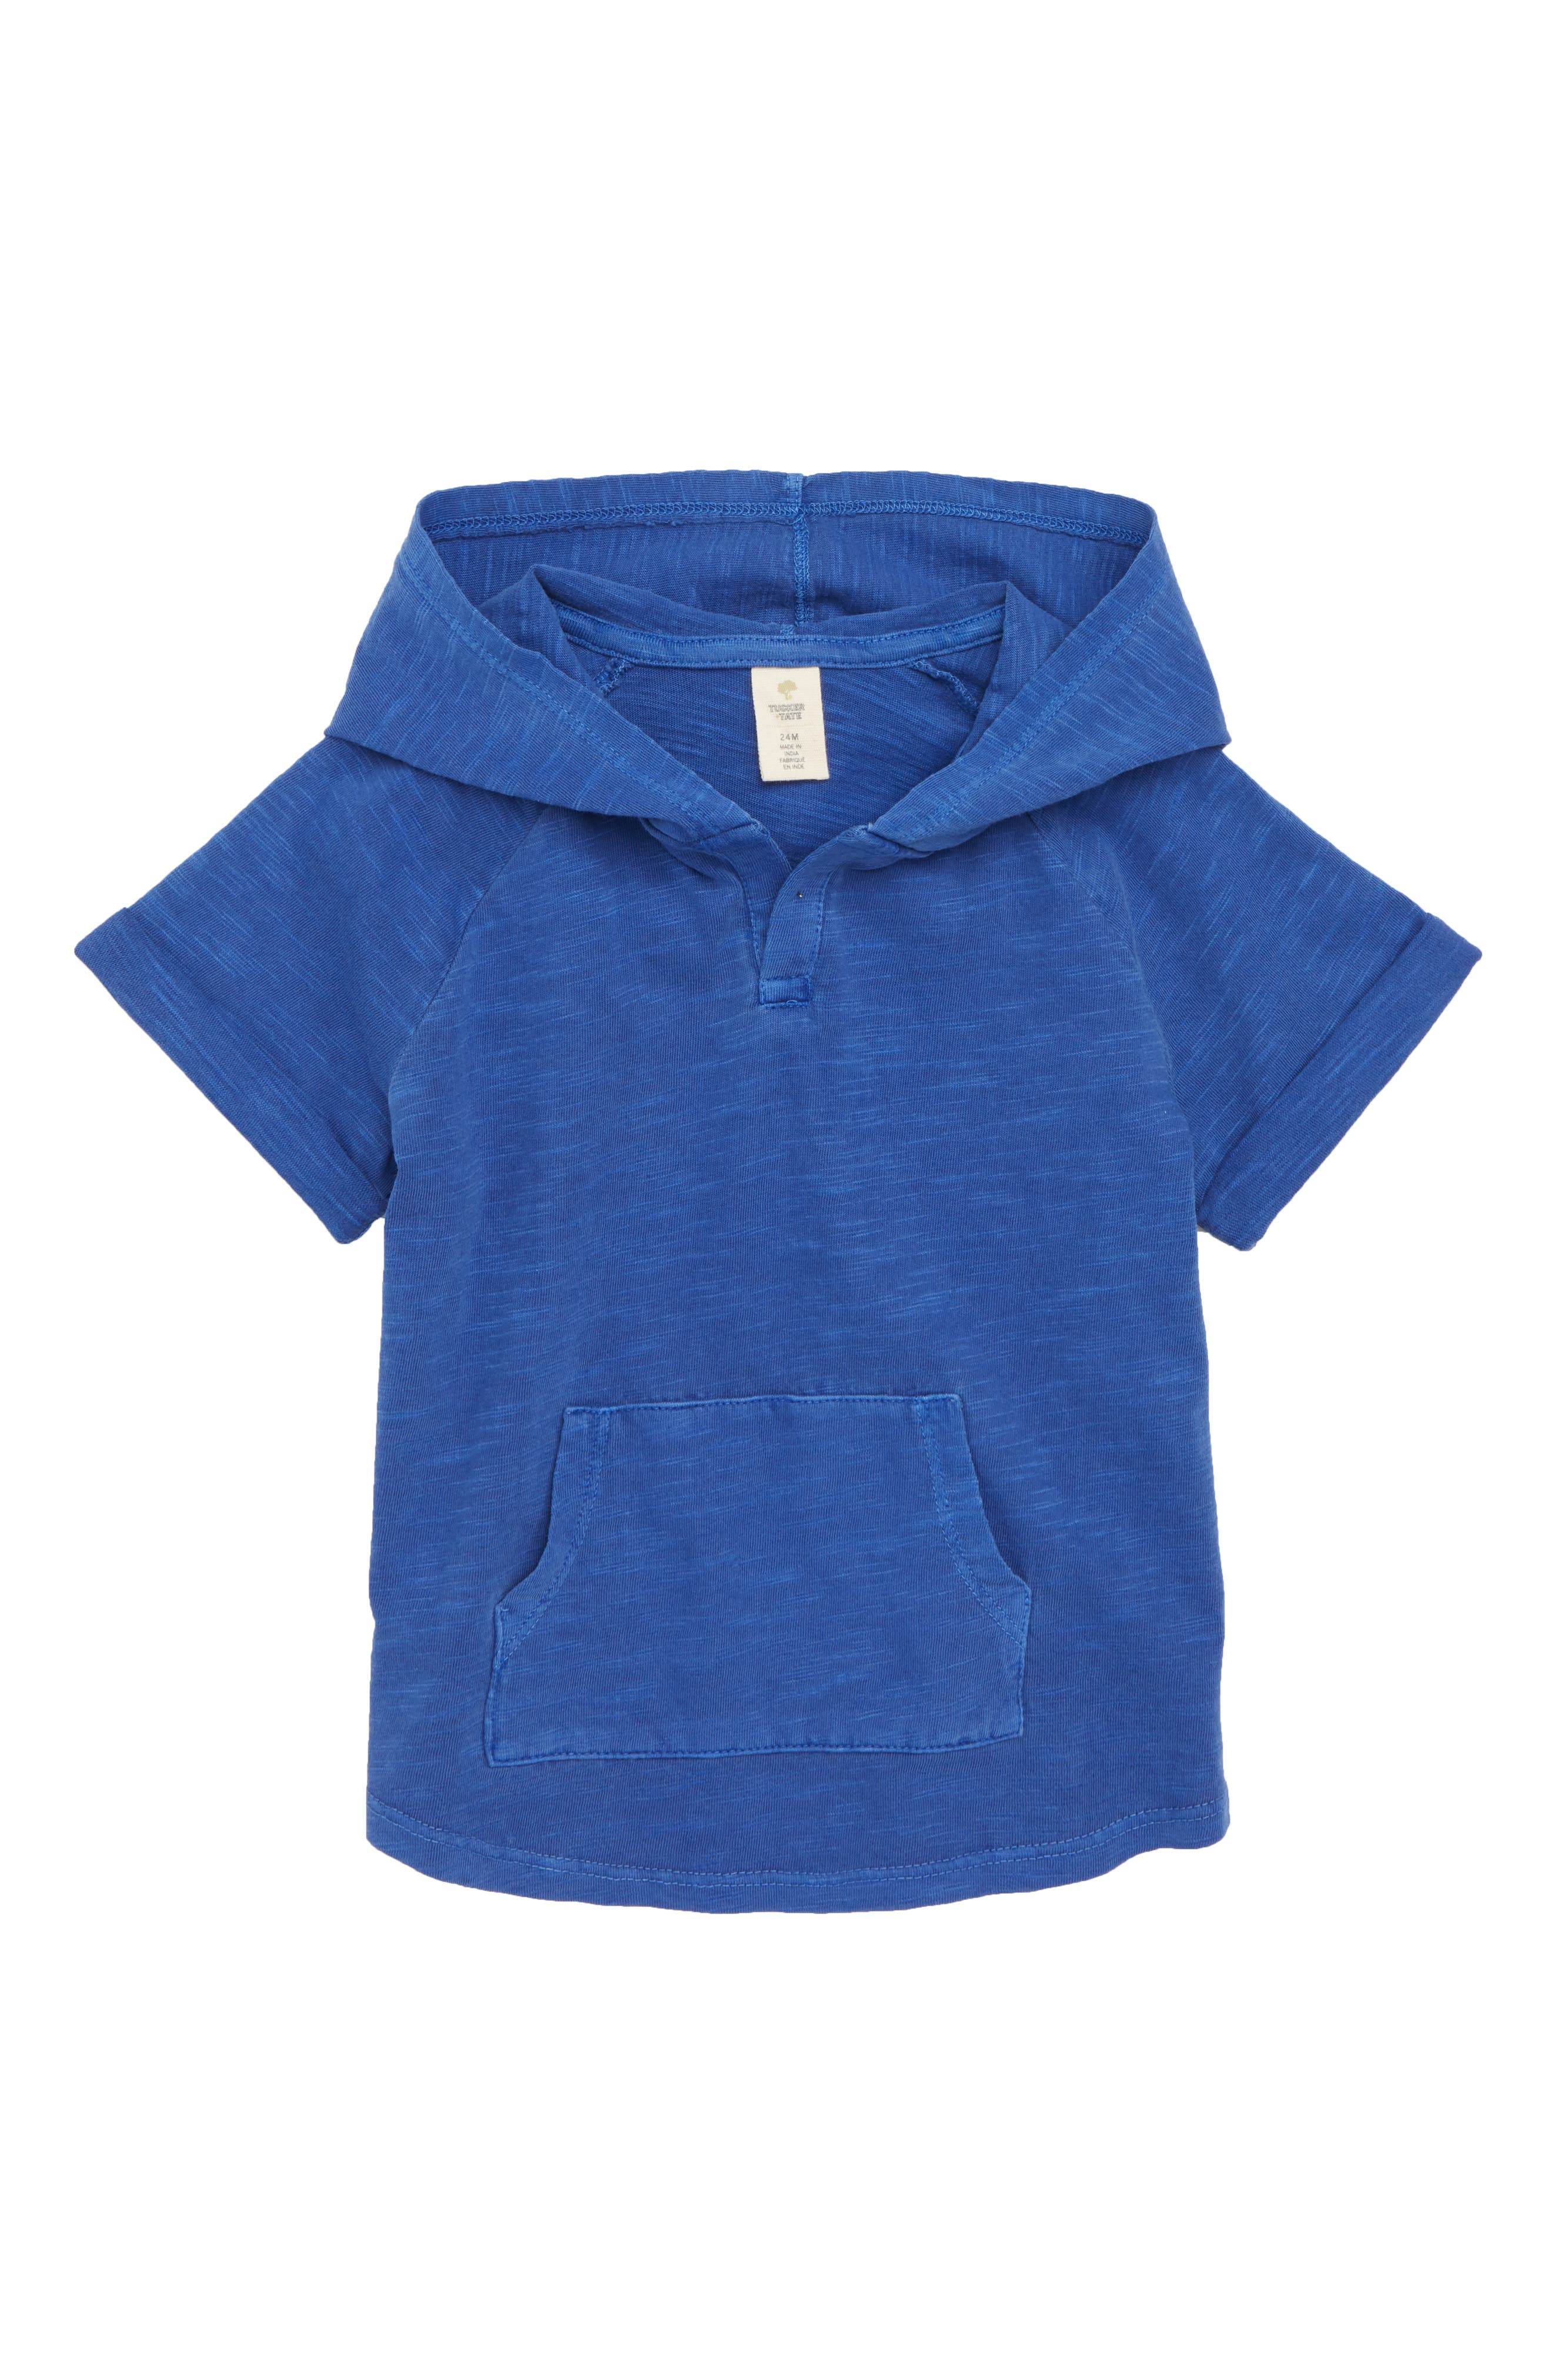 Tucker & Tate Washed Hoodie T-Shirt,                             Main thumbnail 1, color,                             420